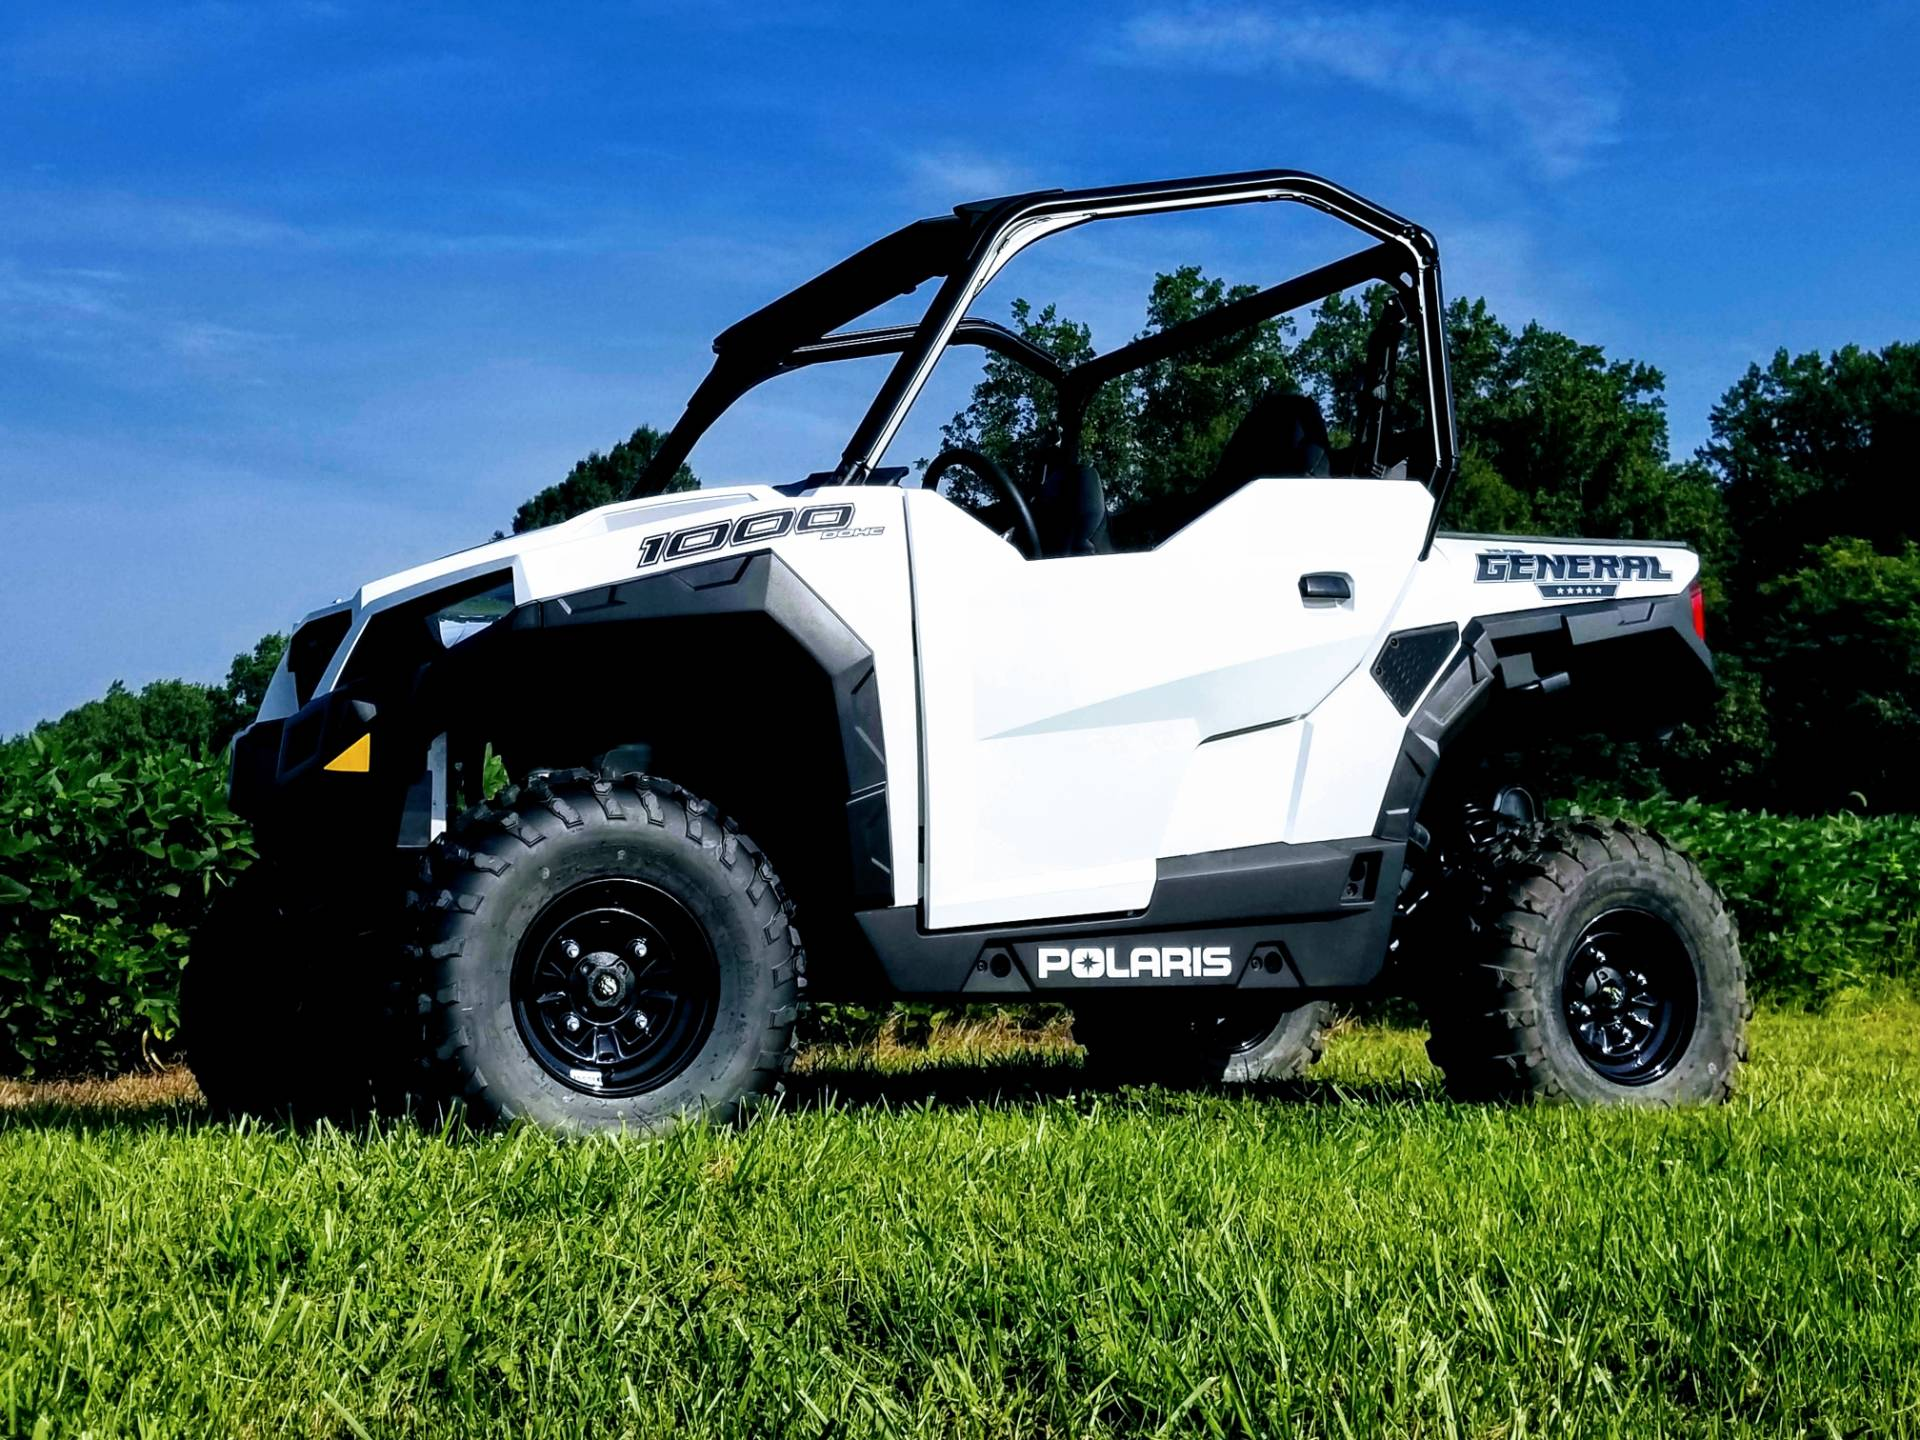 2019 Polaris General 1000 EPS in Statesville, North Carolina - Photo 1